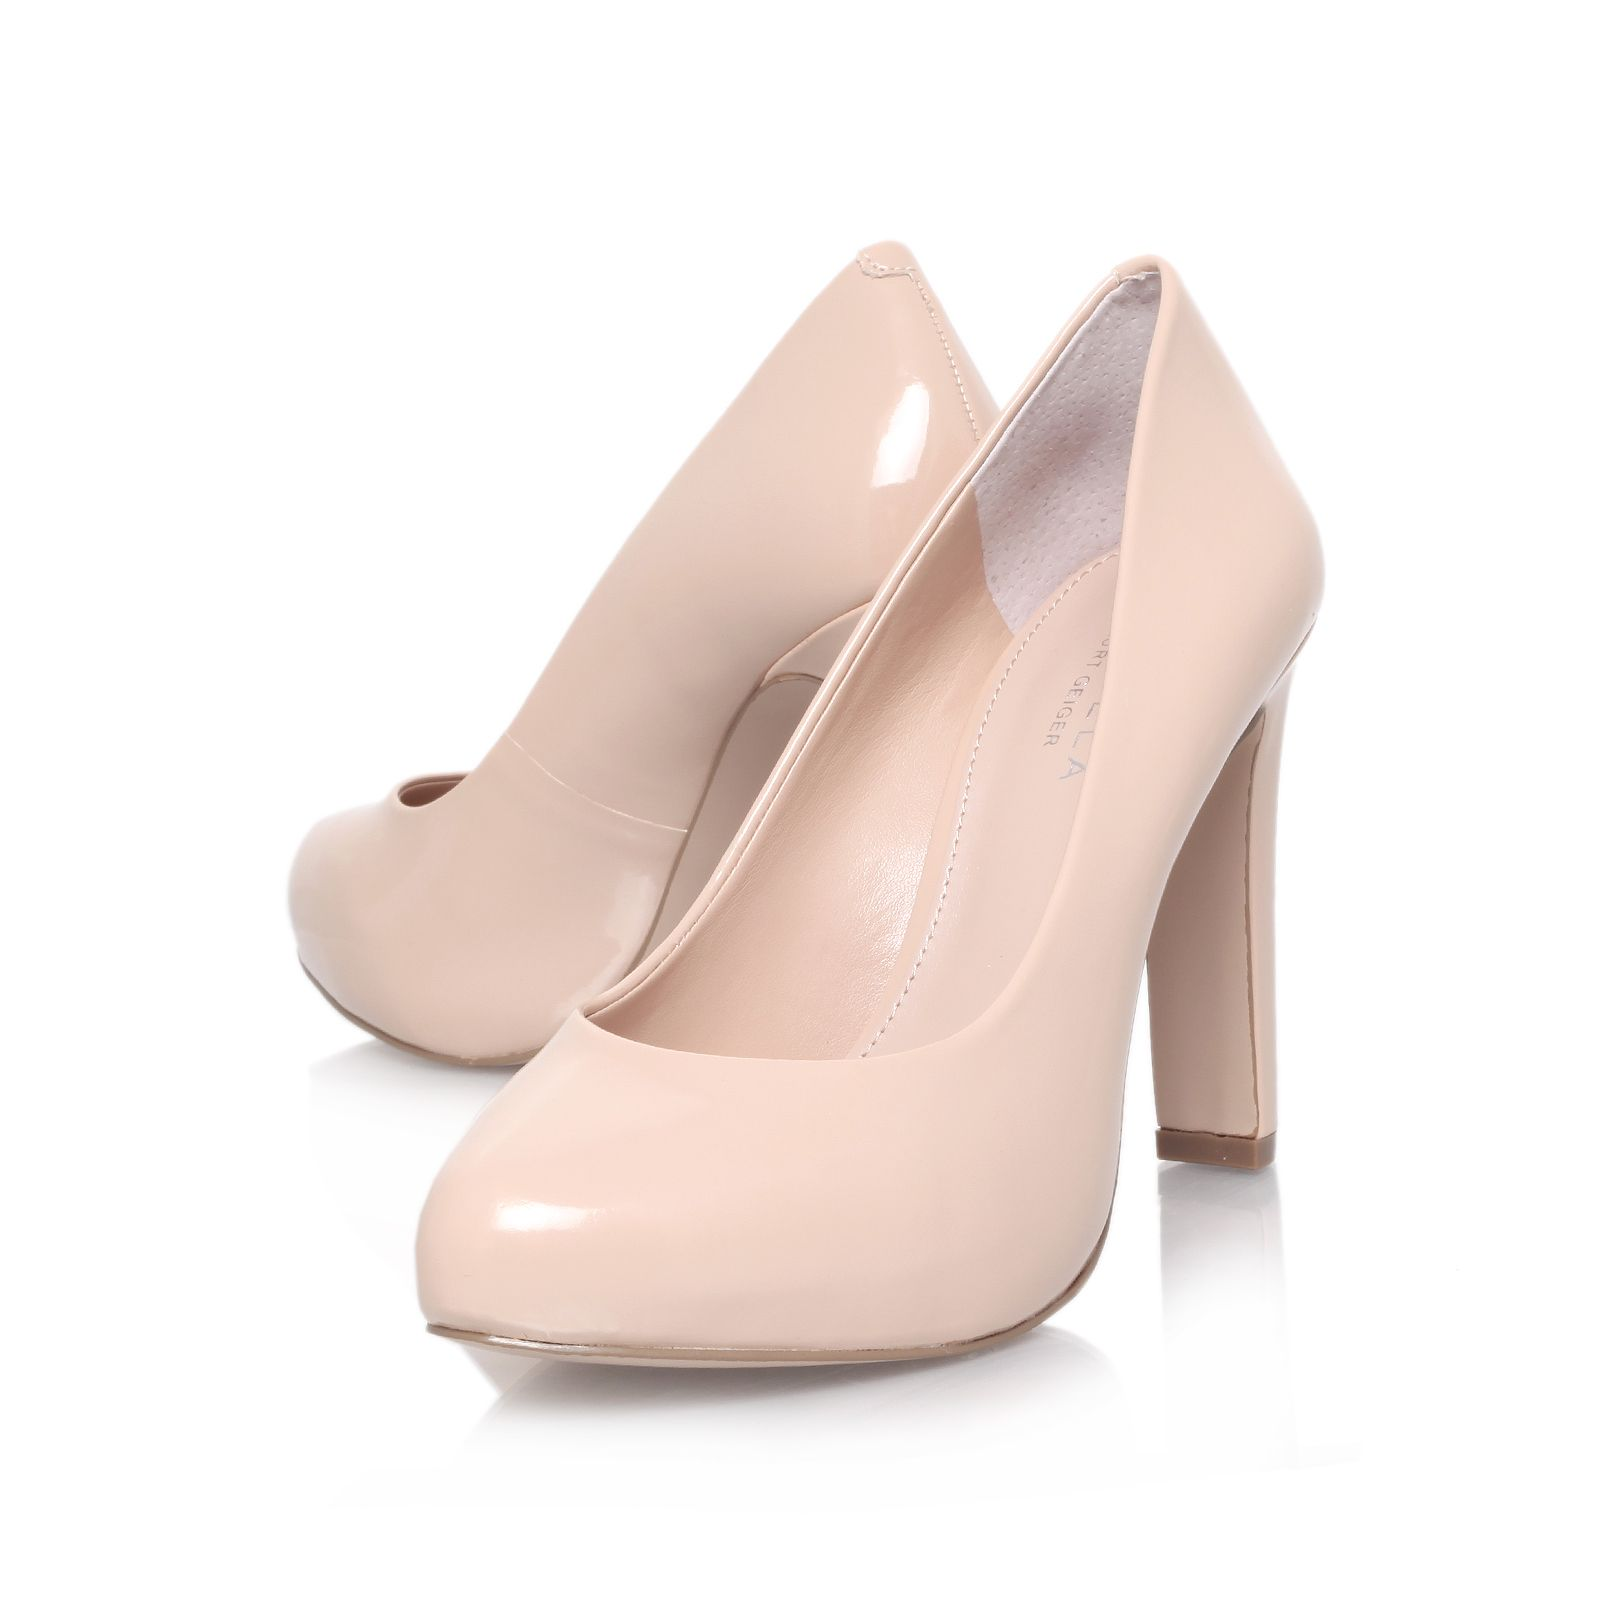 Aware high heel court shoes